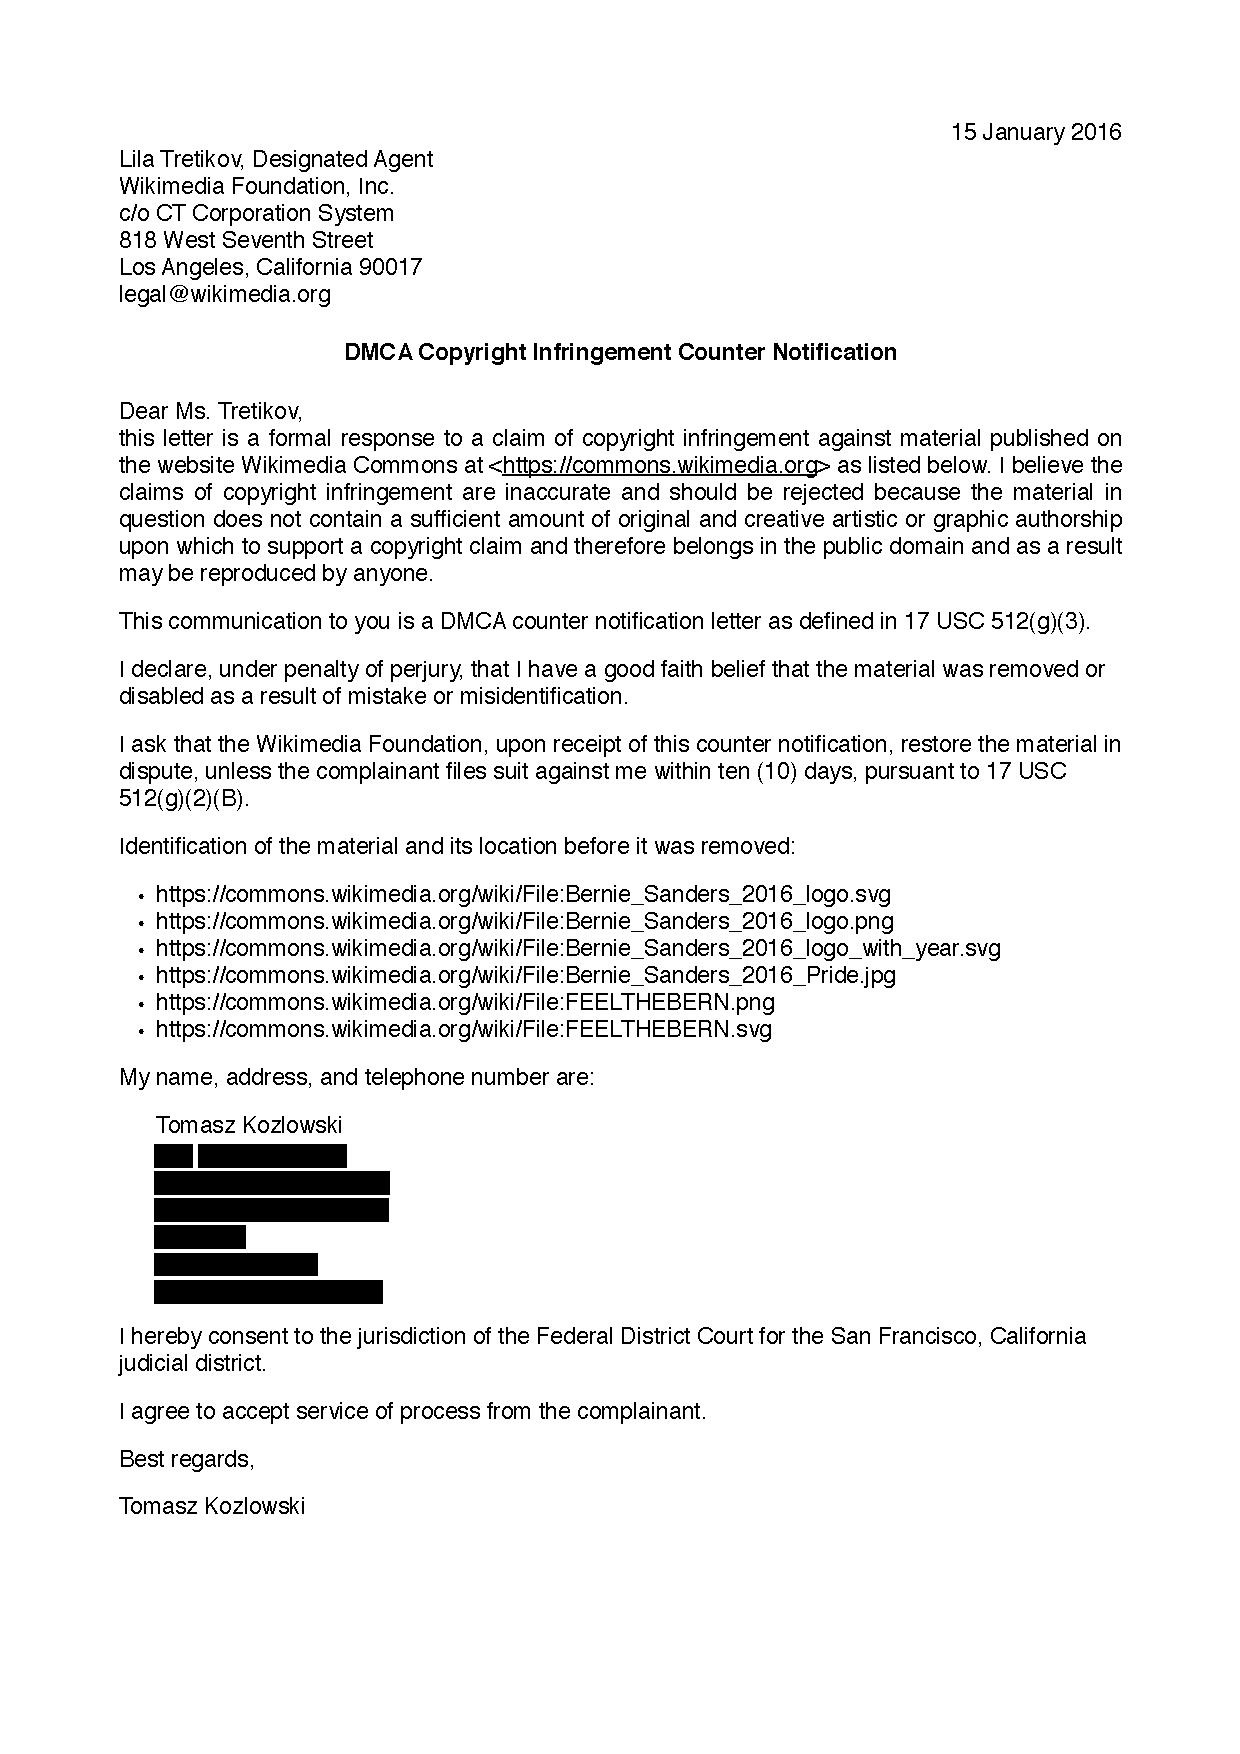 File:Bernie Sanders logos DMCA counter notice Redacted.pdf